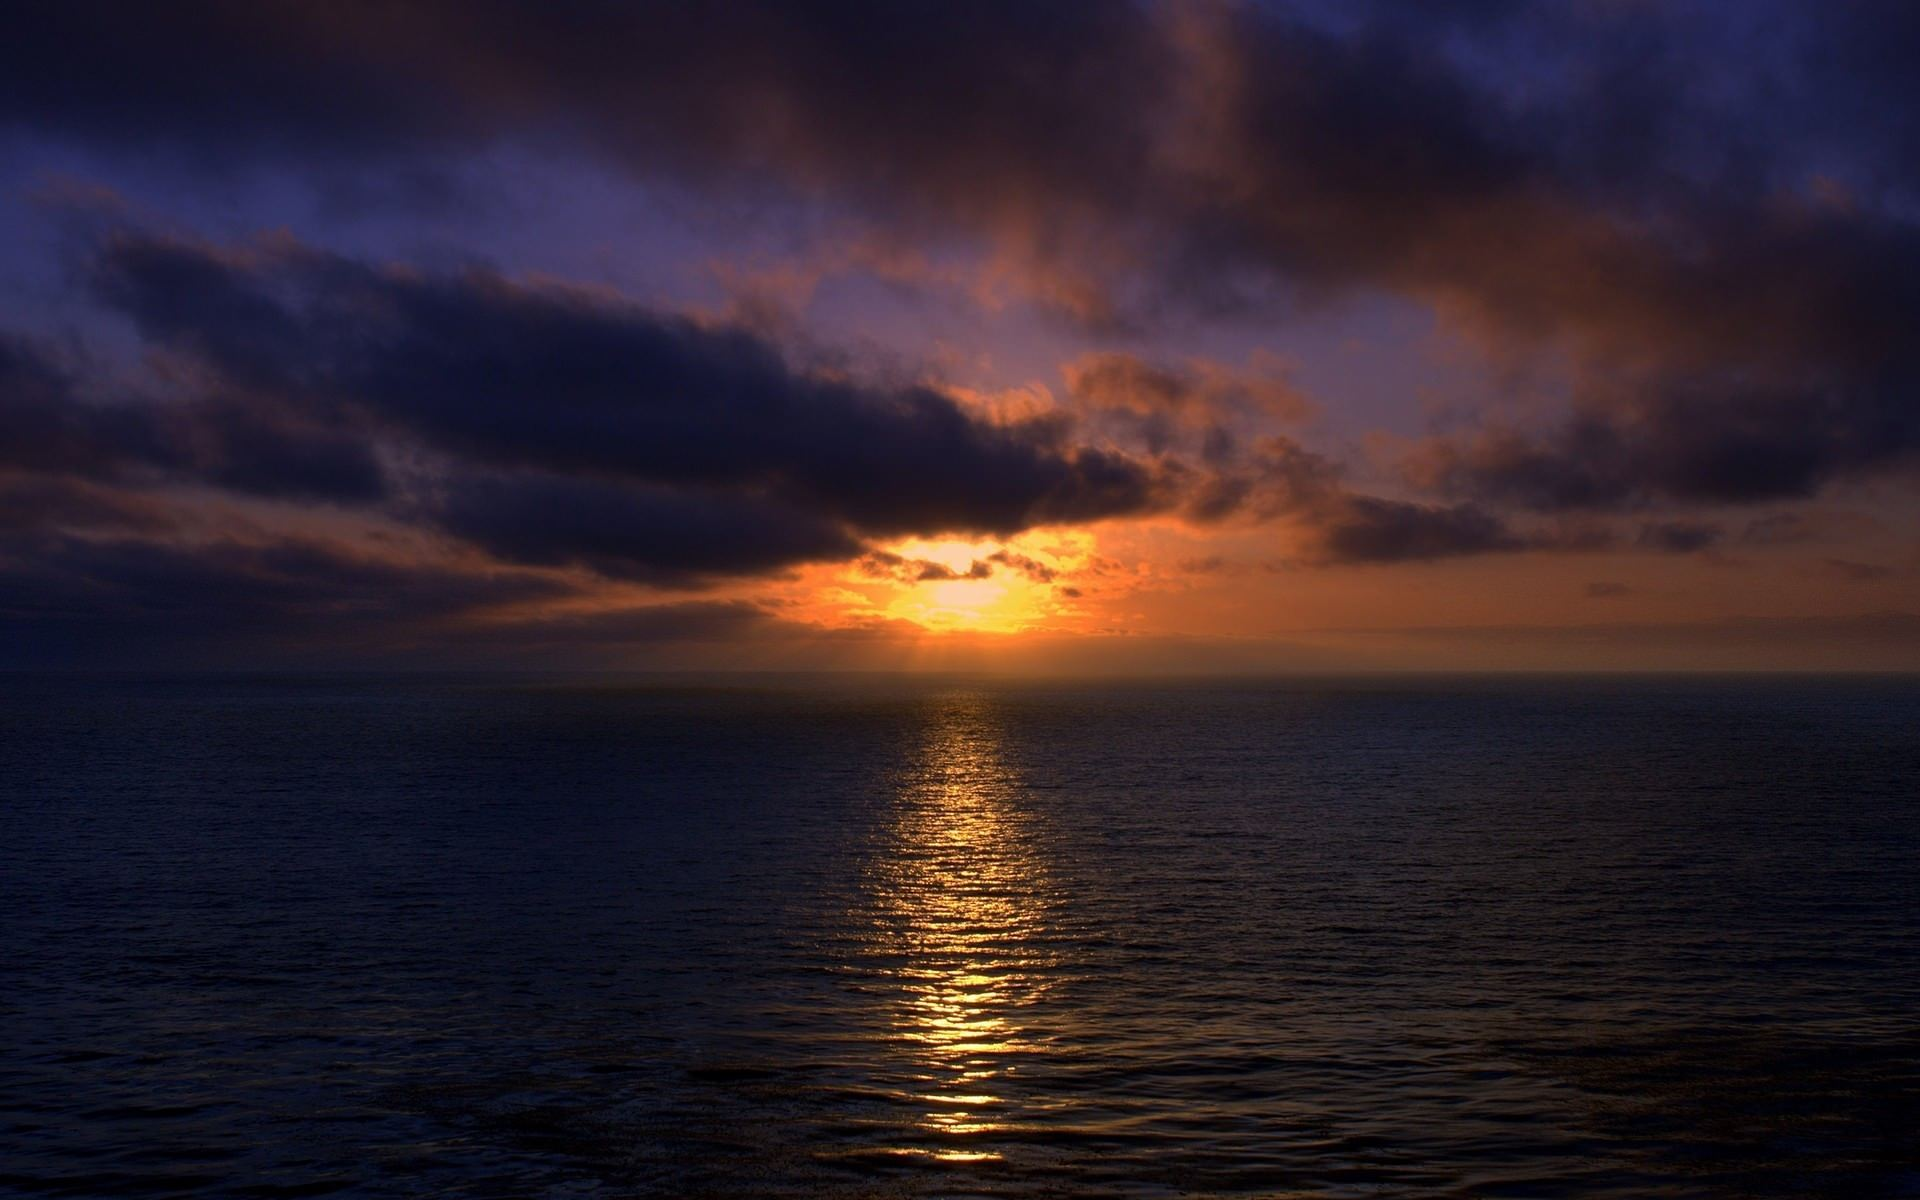 Sunset Over Ocean Wallpaper 1920x1200 1920x1200